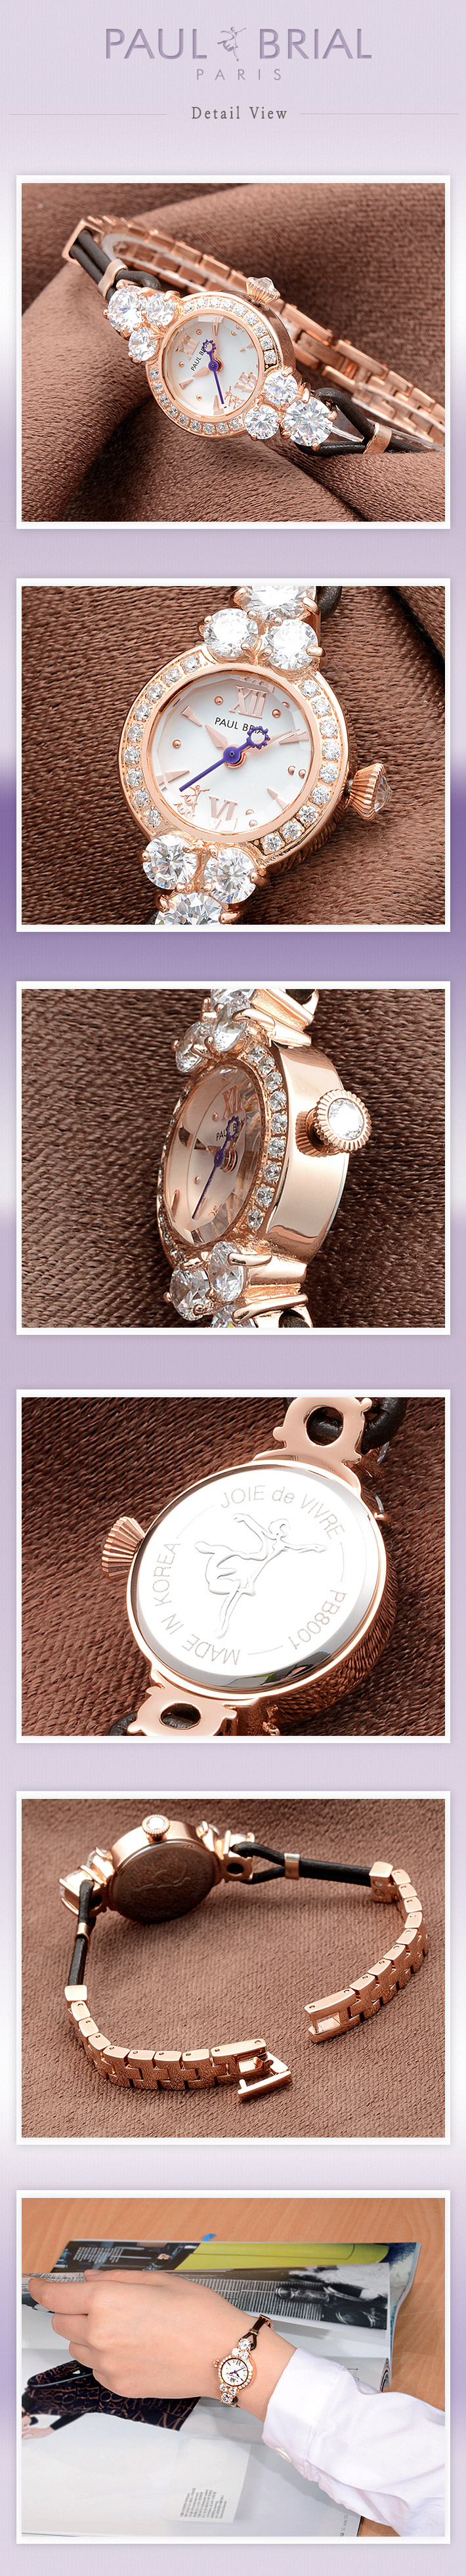 [ PAUL BRIAL ] KOREA MADE HIGH QUALITY LADIES ROSE GOLD BROWN BRACELET WATCH PB8001ROBR VERSAILLES